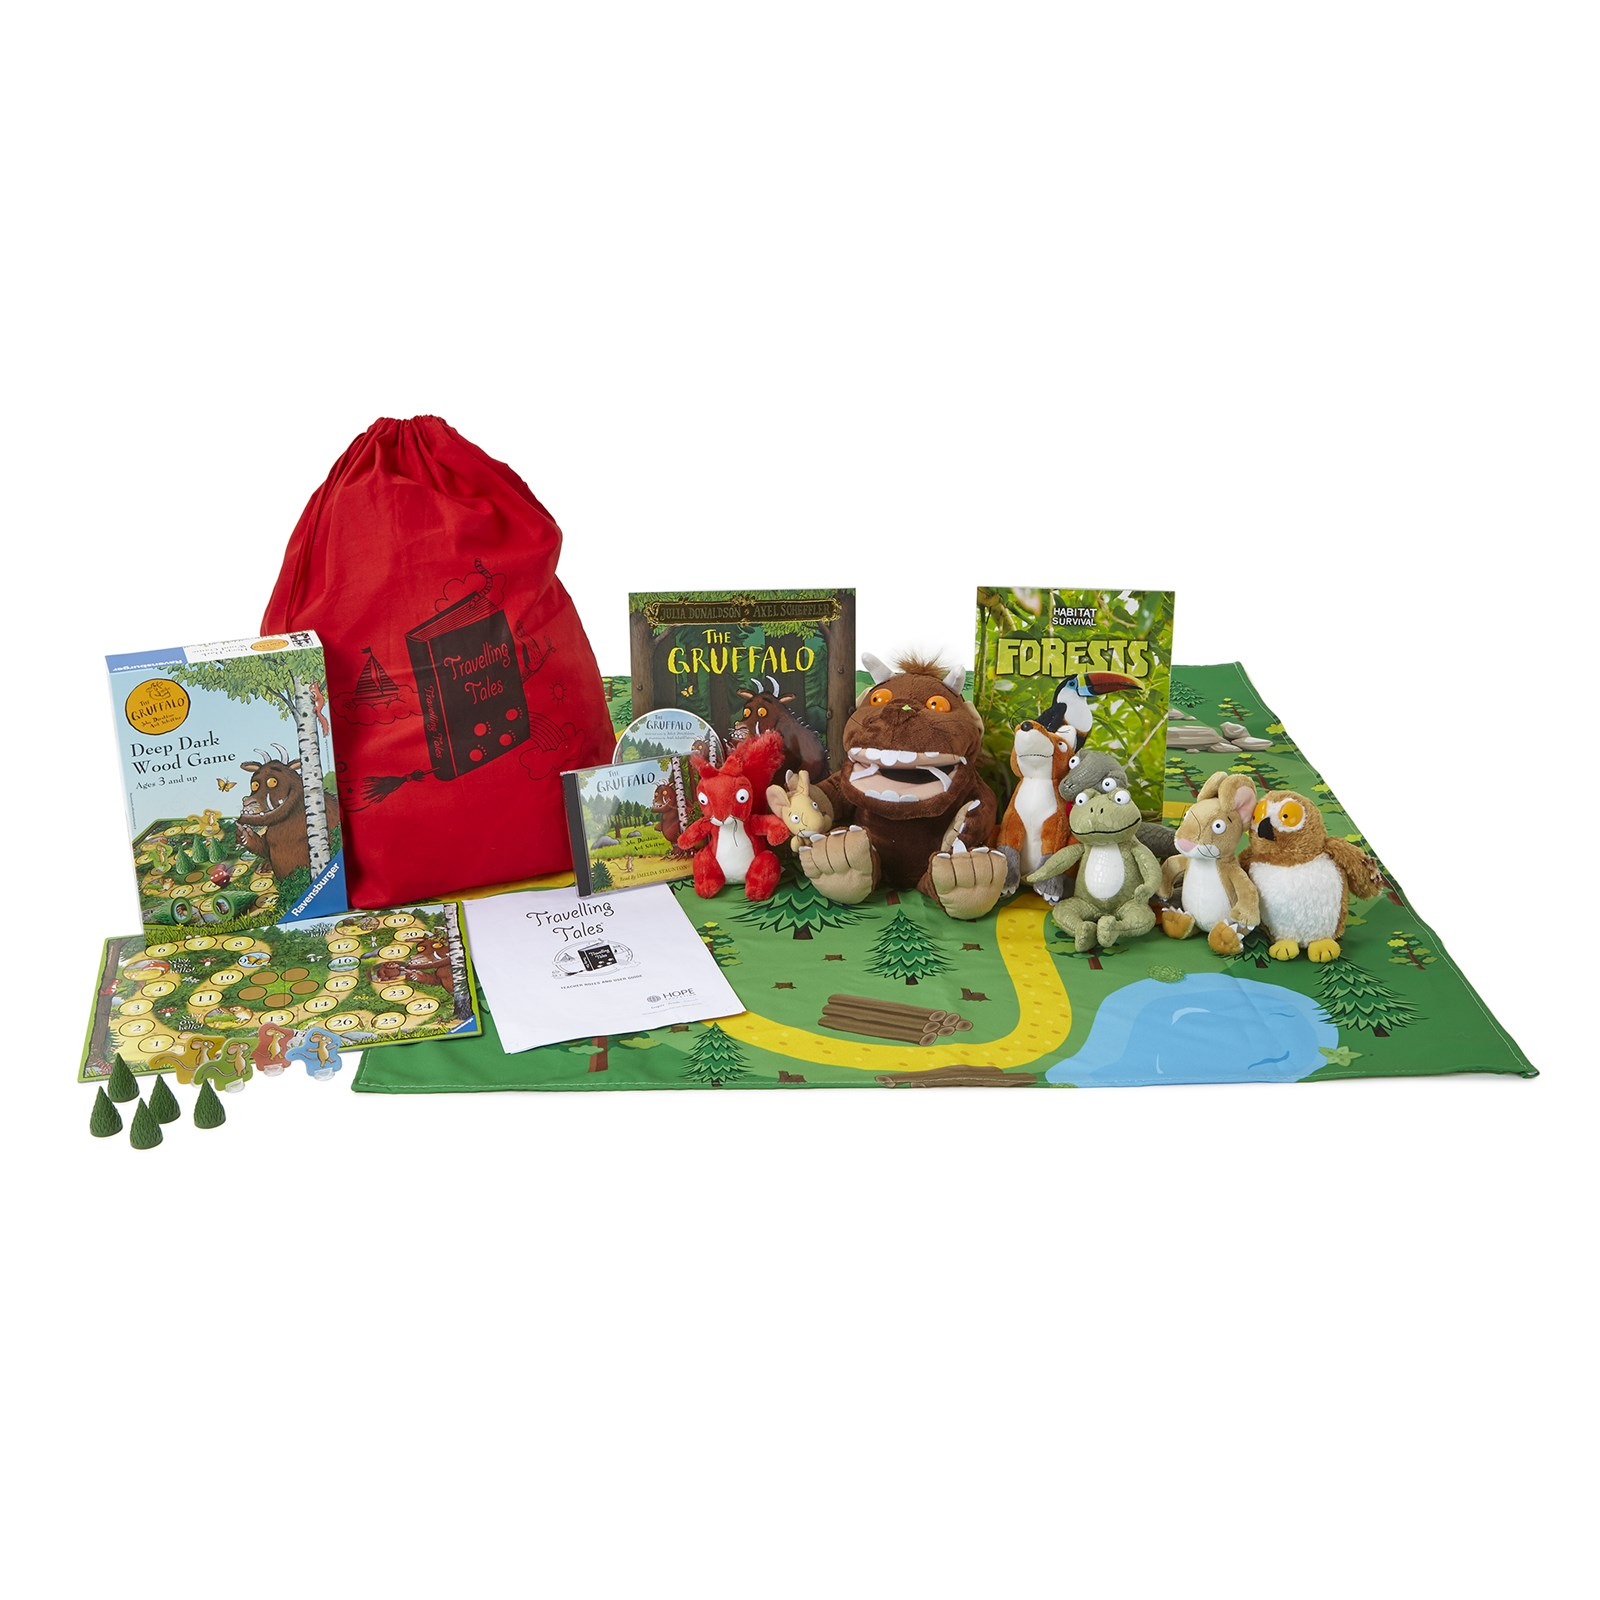 Travelling Tales: The Gruffalo